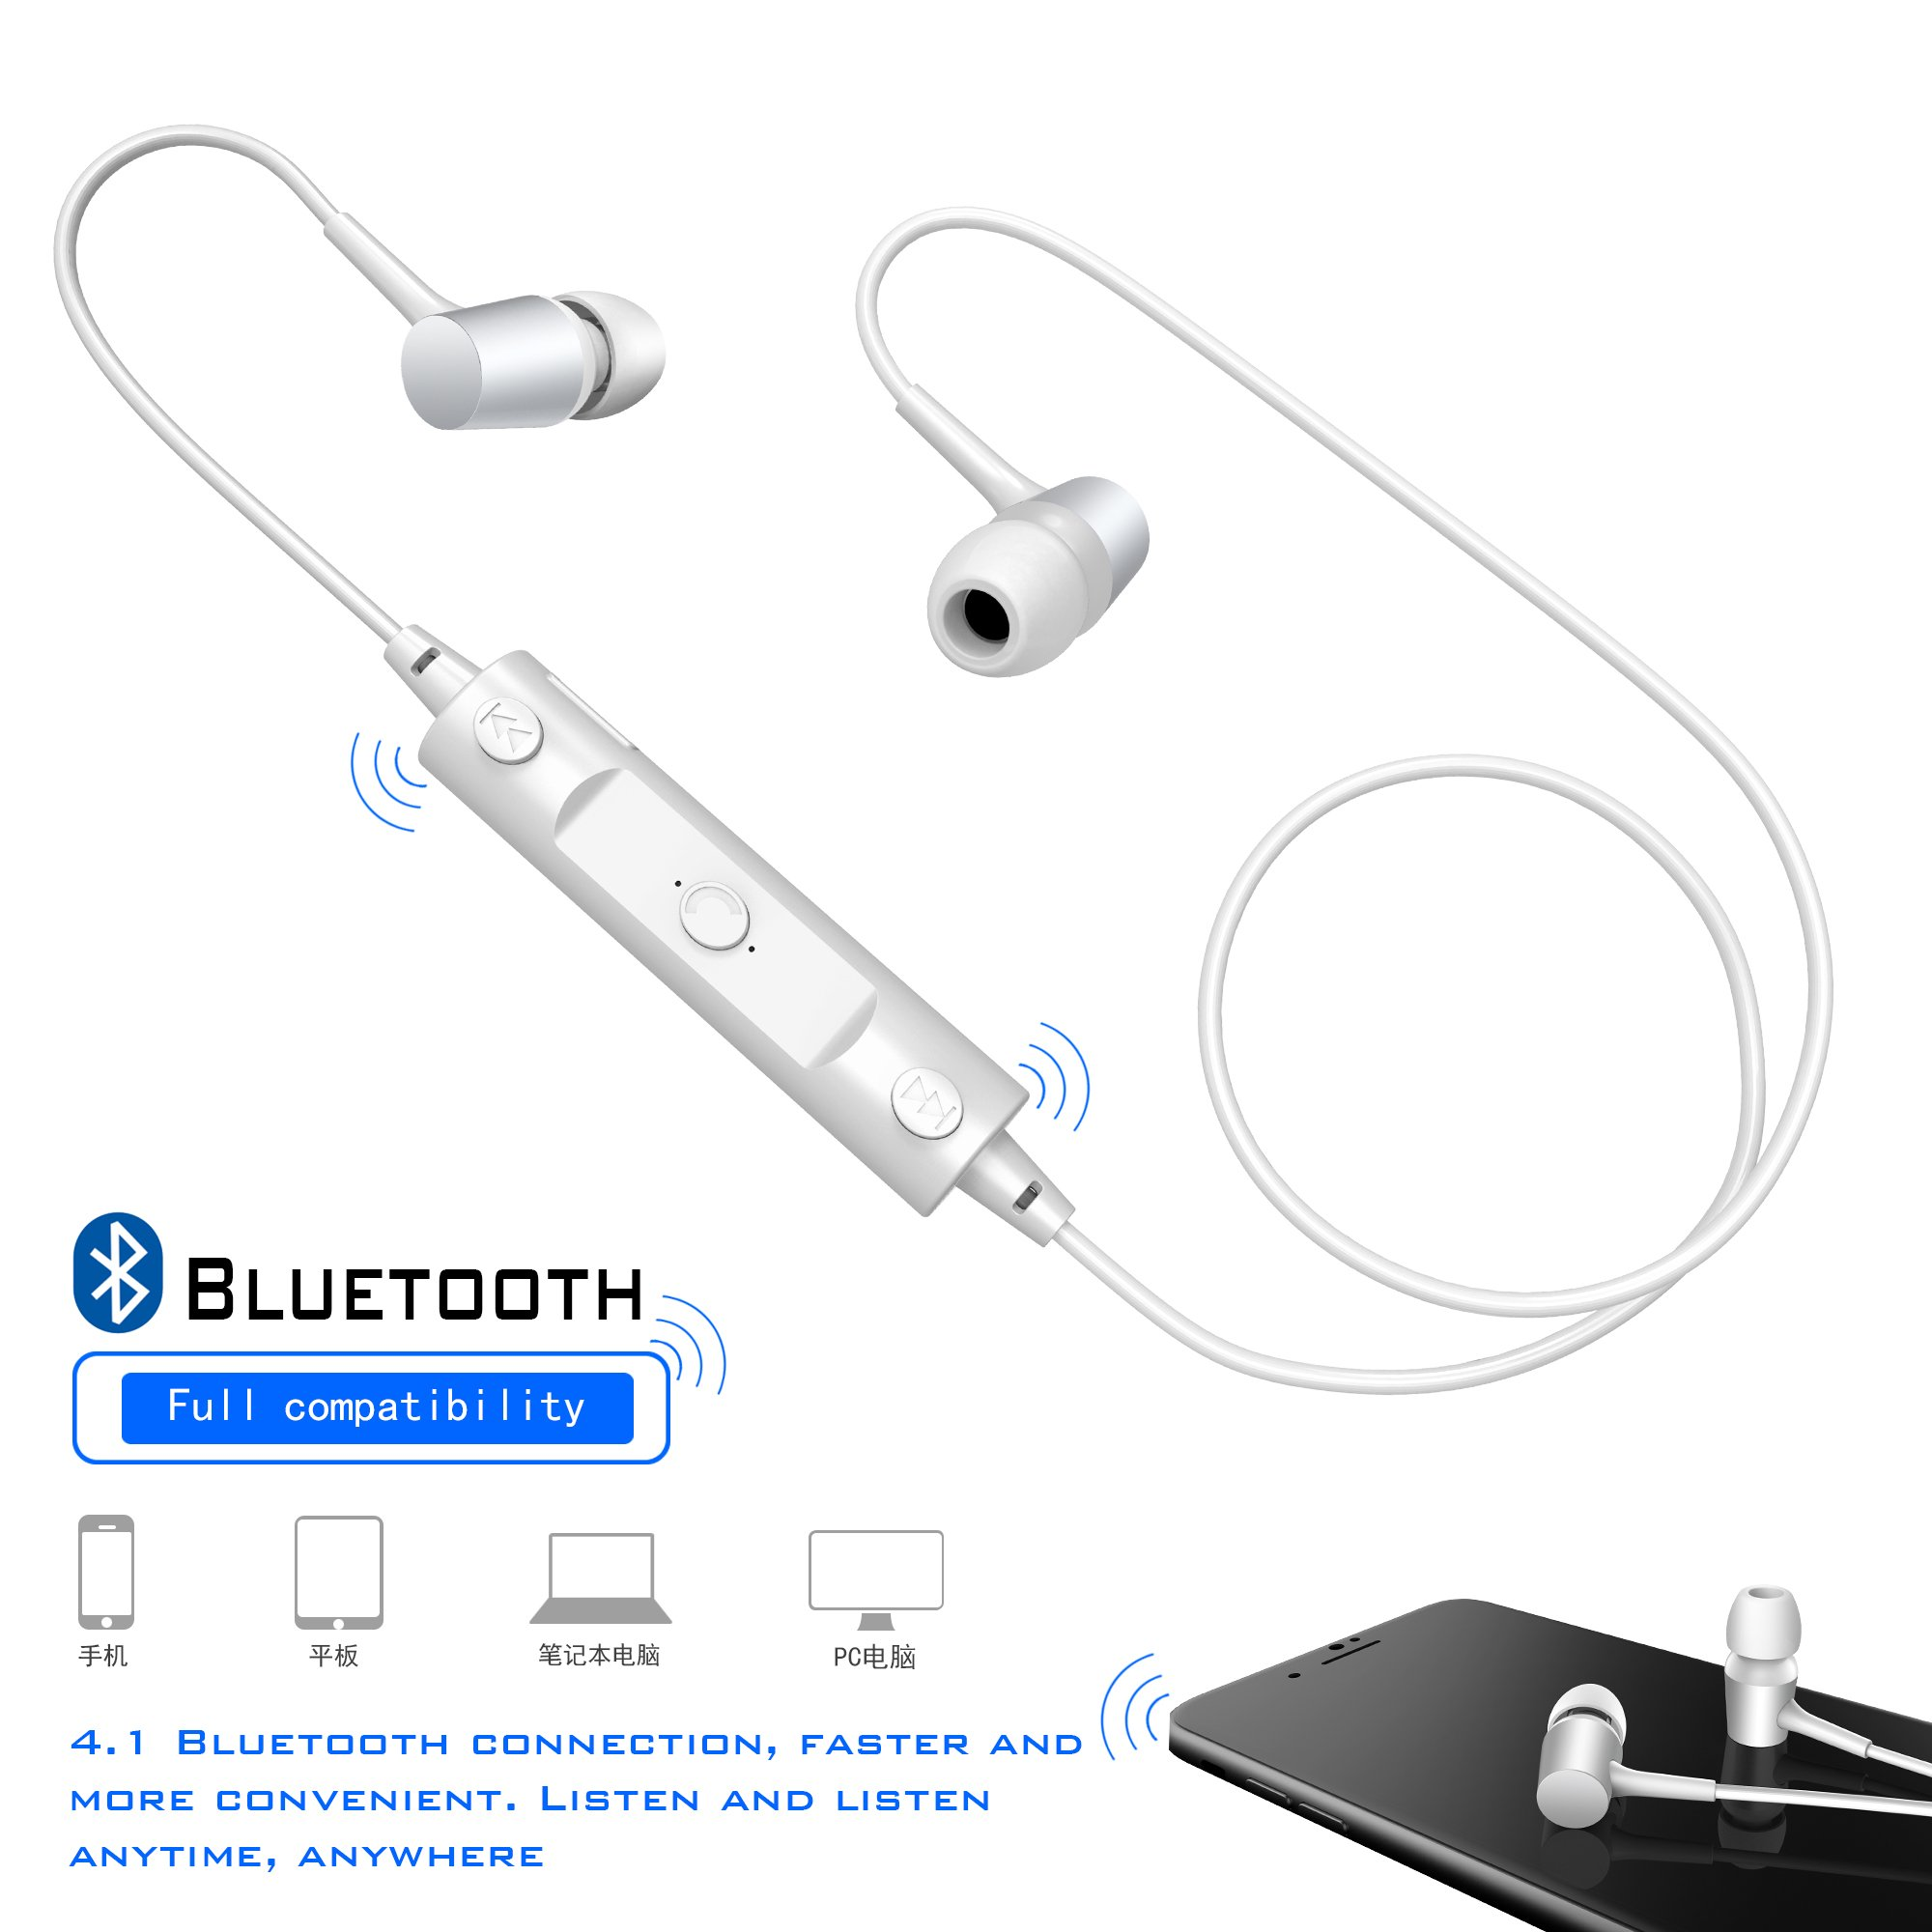 Bluetooth Headphones Sweatproof Sports Earphones Wireless Headset Magnetic attraction Earbuds for Running Workout Gym Noise Cancelling White